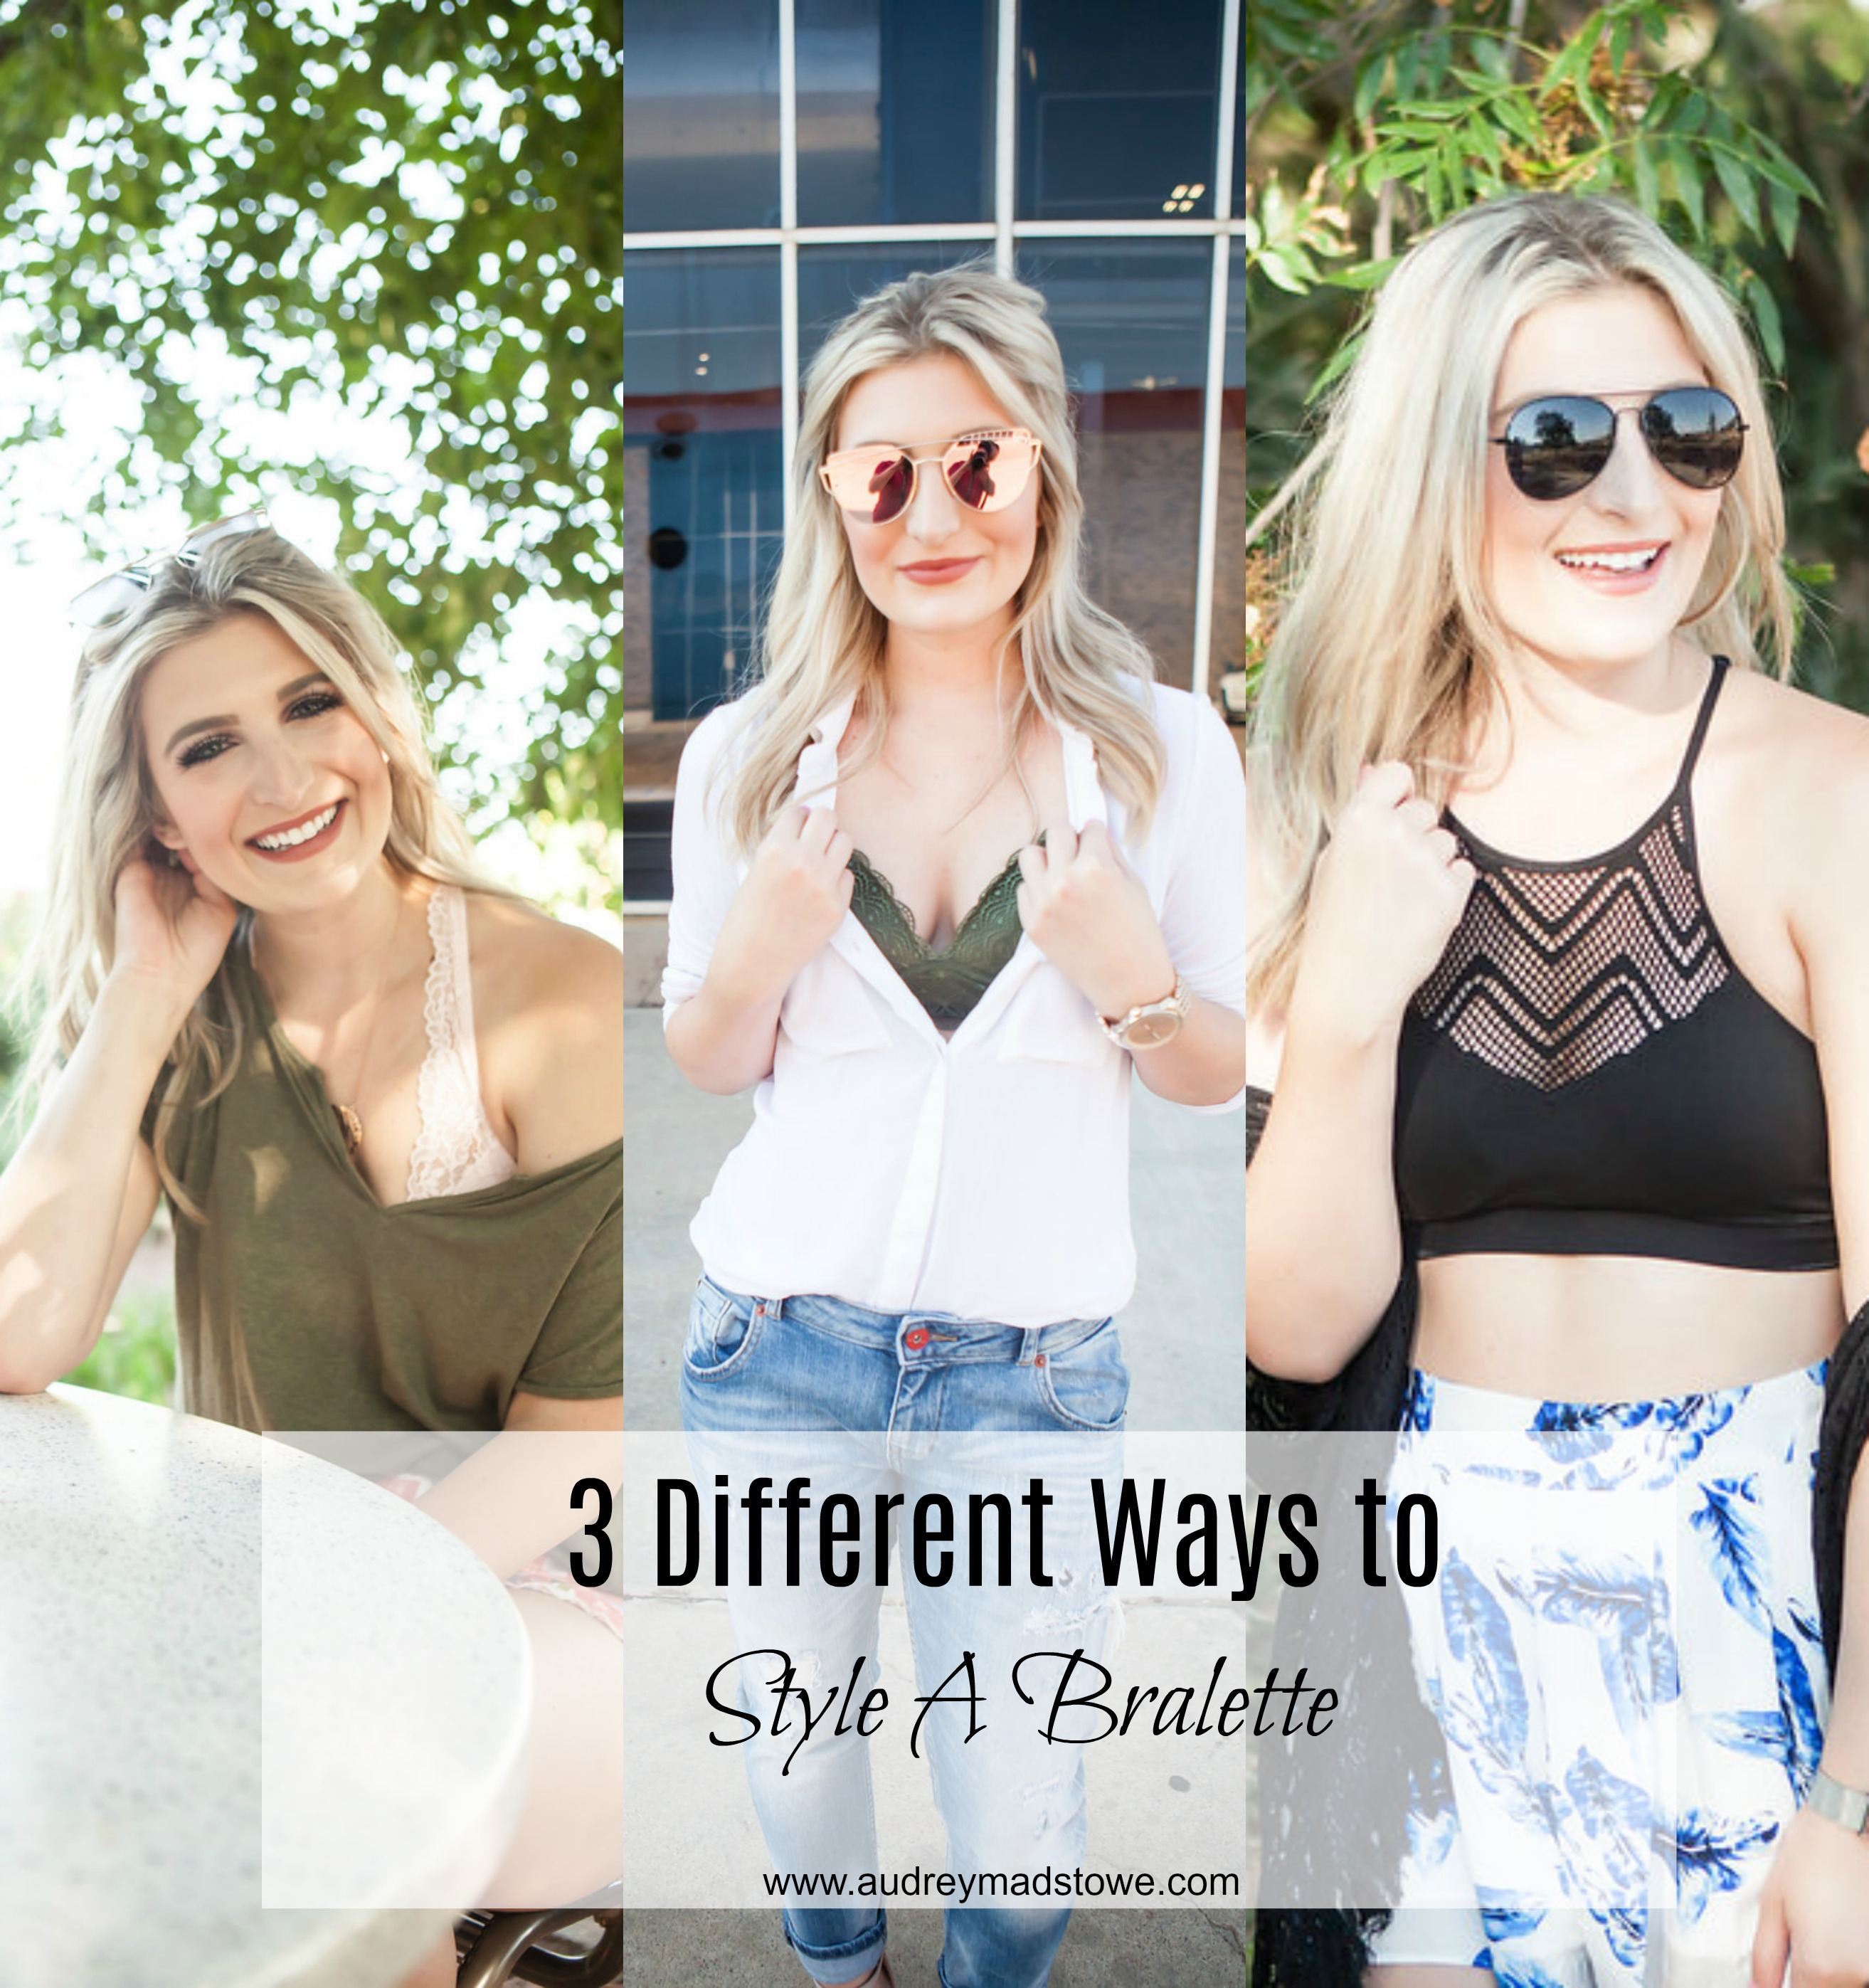 3 Ways to Style A Bralette with Kohls | Summer Style | lifestyle and fashion college blogger Audrey Madison Stowe - How To Style A Bralette With Kohls by popular Texas fashion blogger, Audrey Madison Stowe